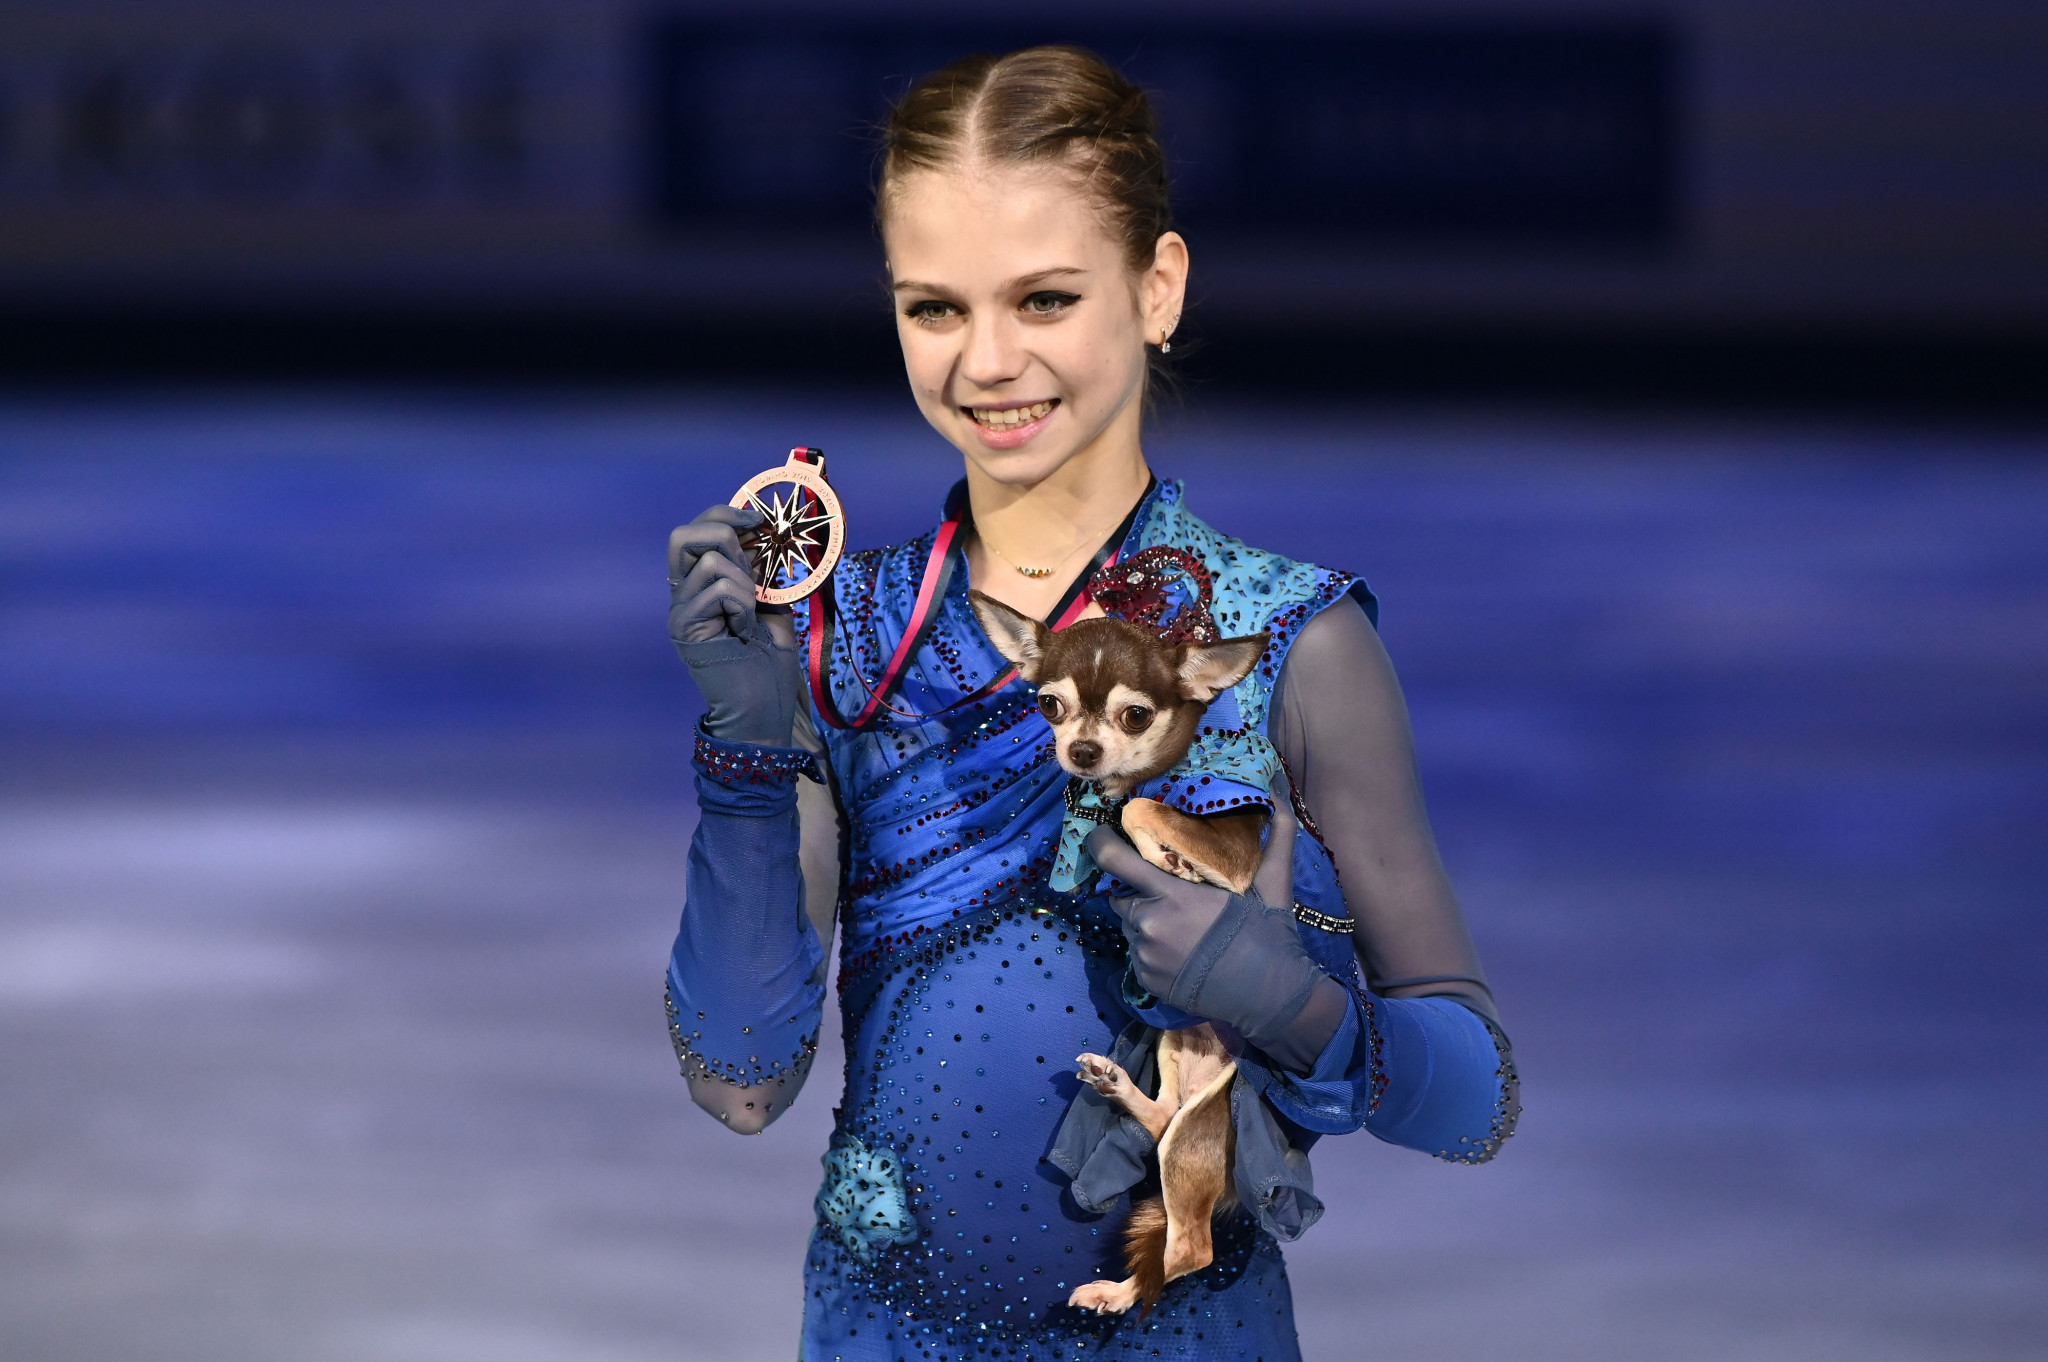 Alexandra Trusova celebrated her bronze medal in Turin, where she set the world record, with her dog ©Getty Images